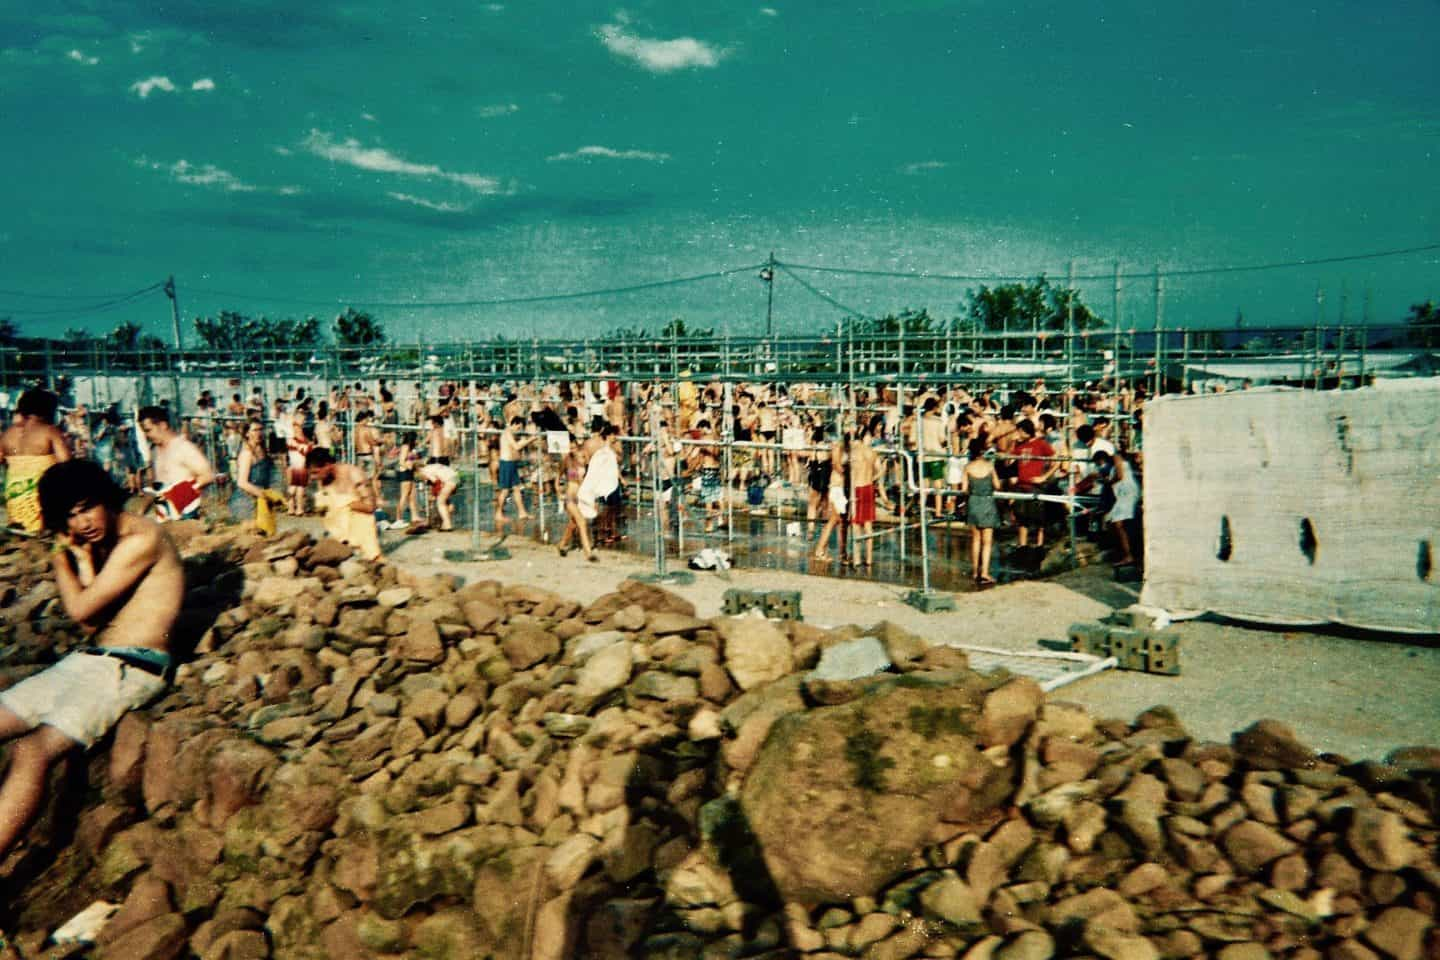 Showers at Benicassim Festival Campsite